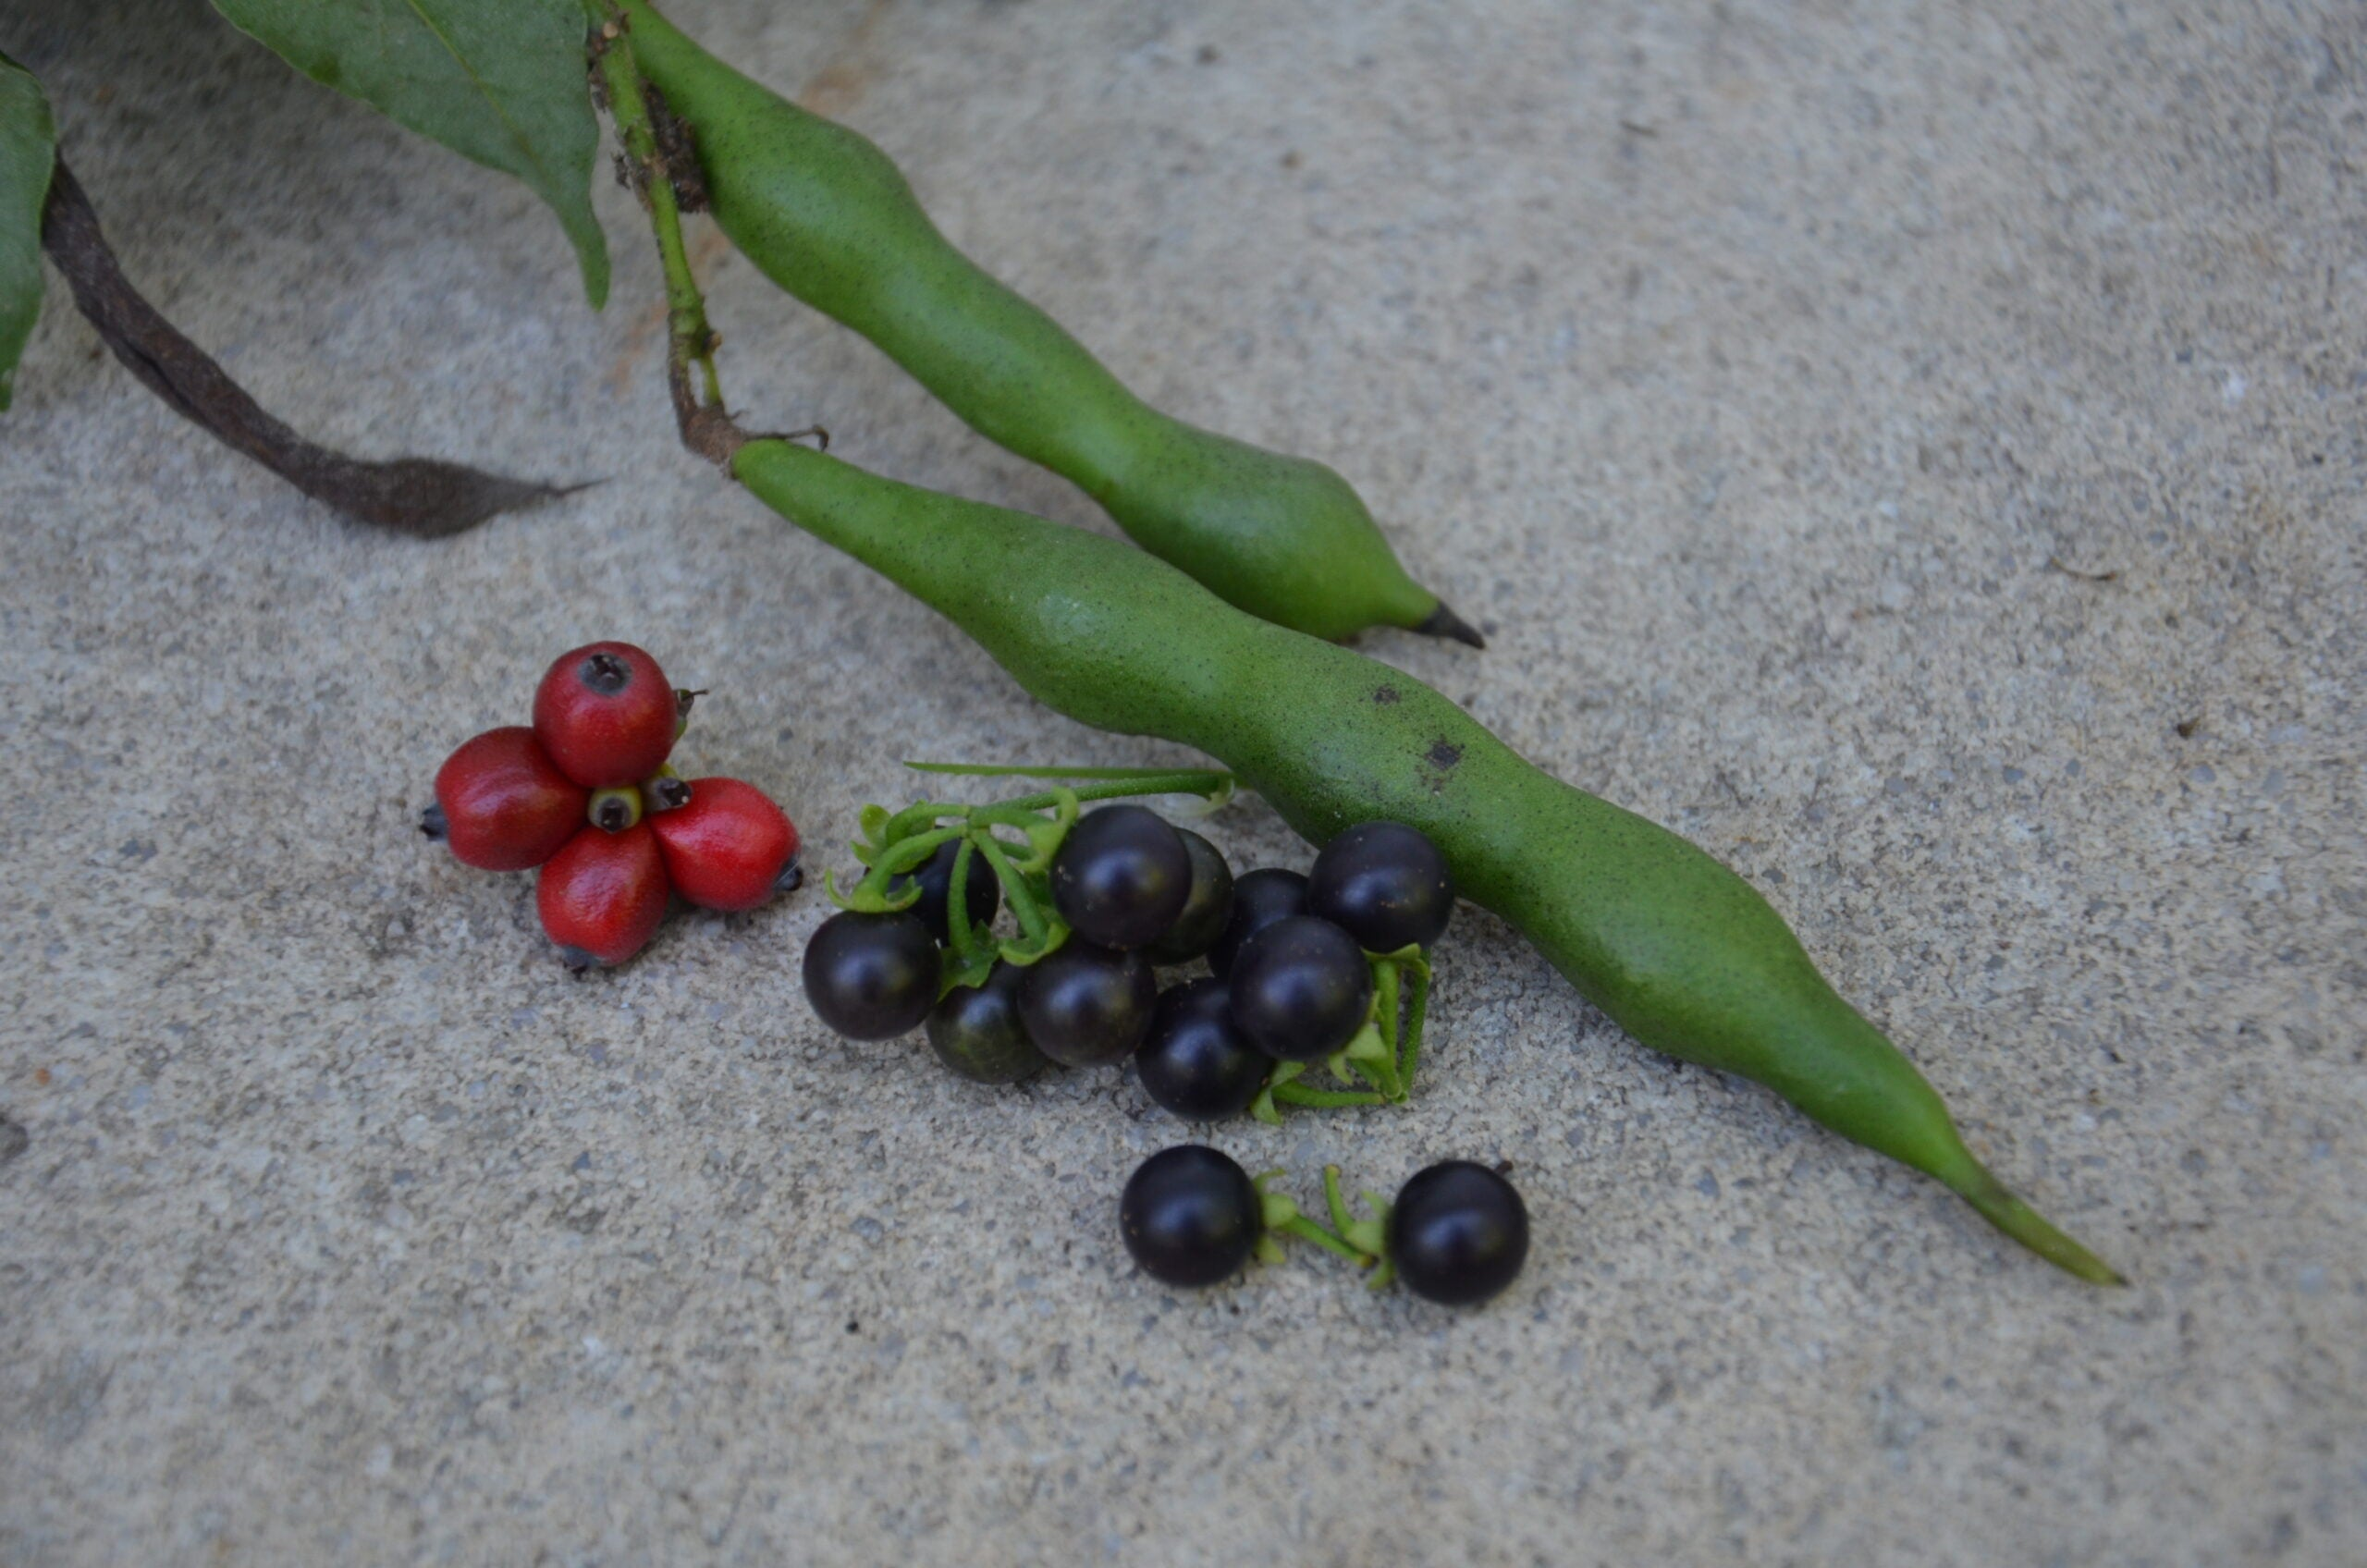 13 Toxic Wild Plants That Look Like Food